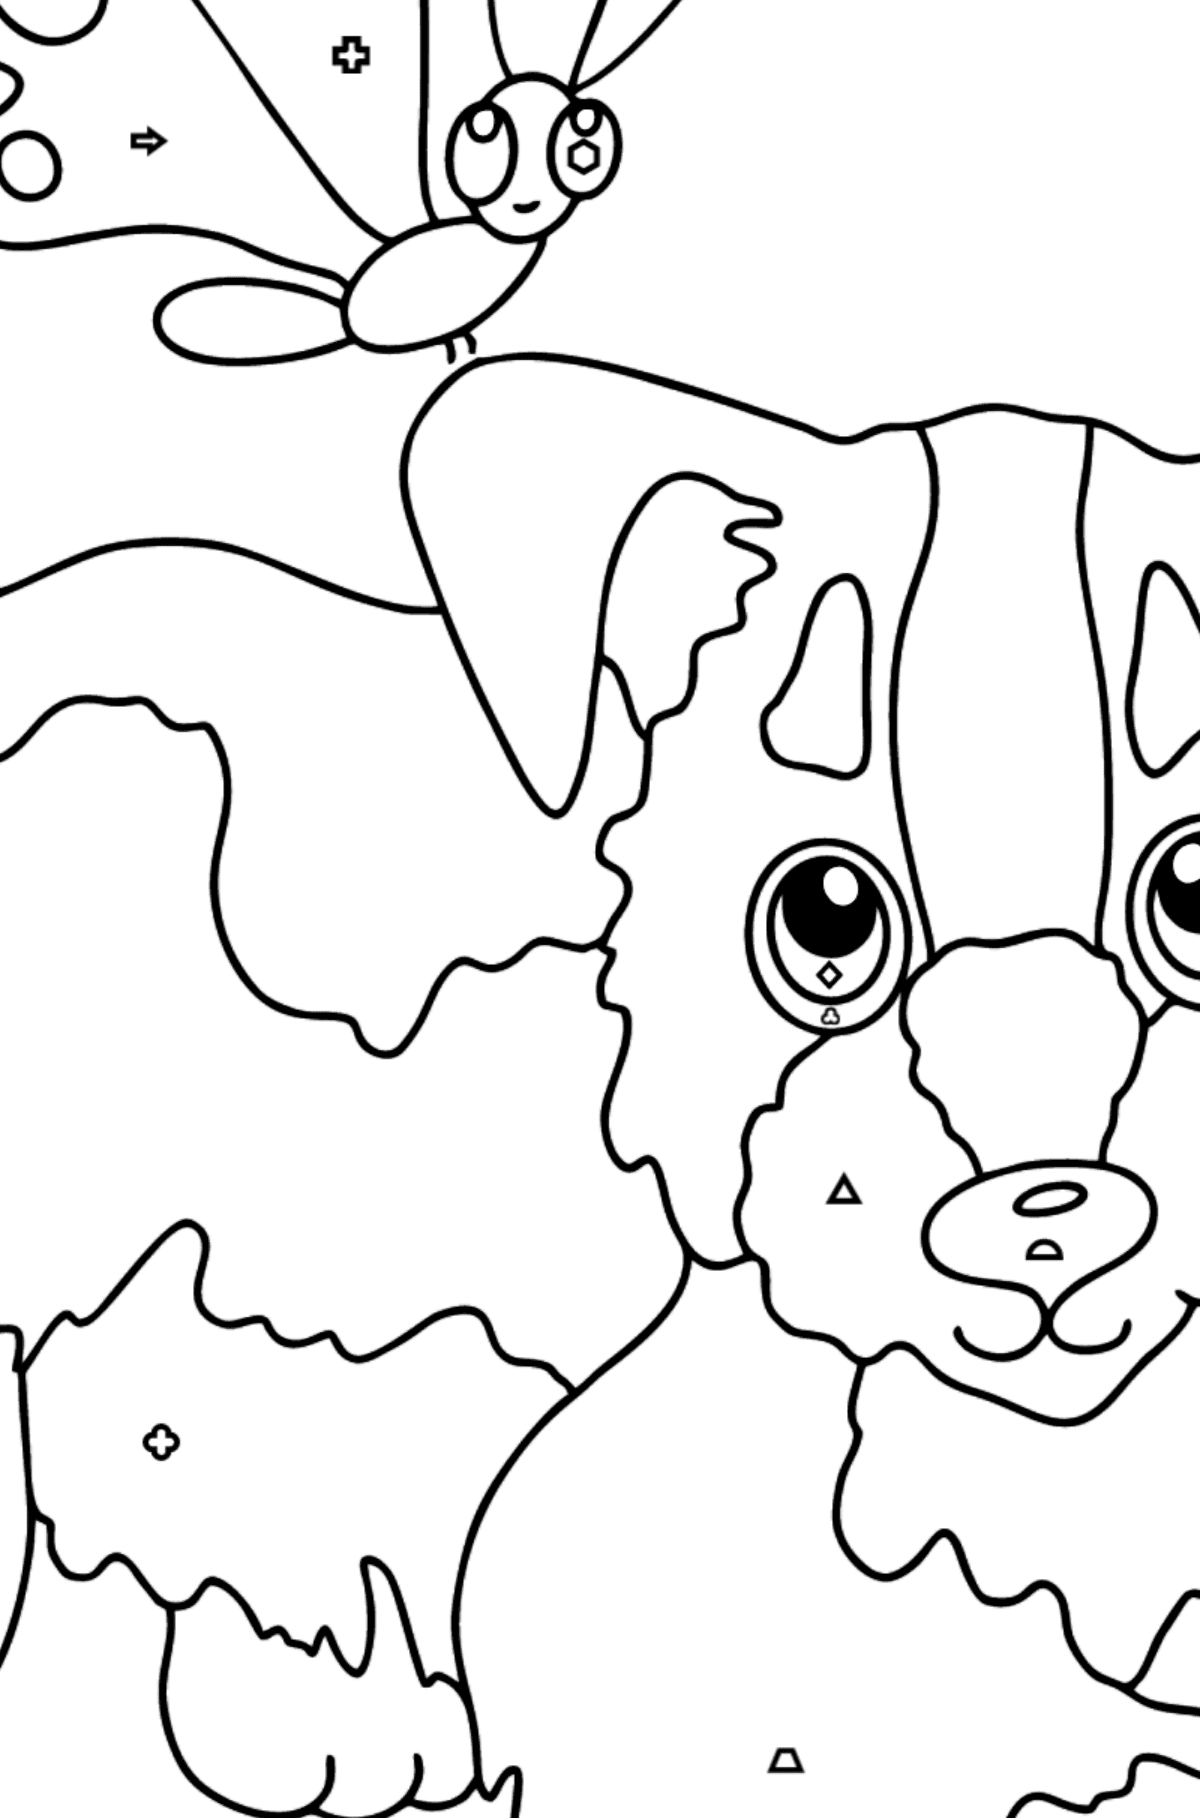 Coloring Page - A Dog is Playing with a Beautiful Butterfly - Coloring by Geometric Shapes for Kids